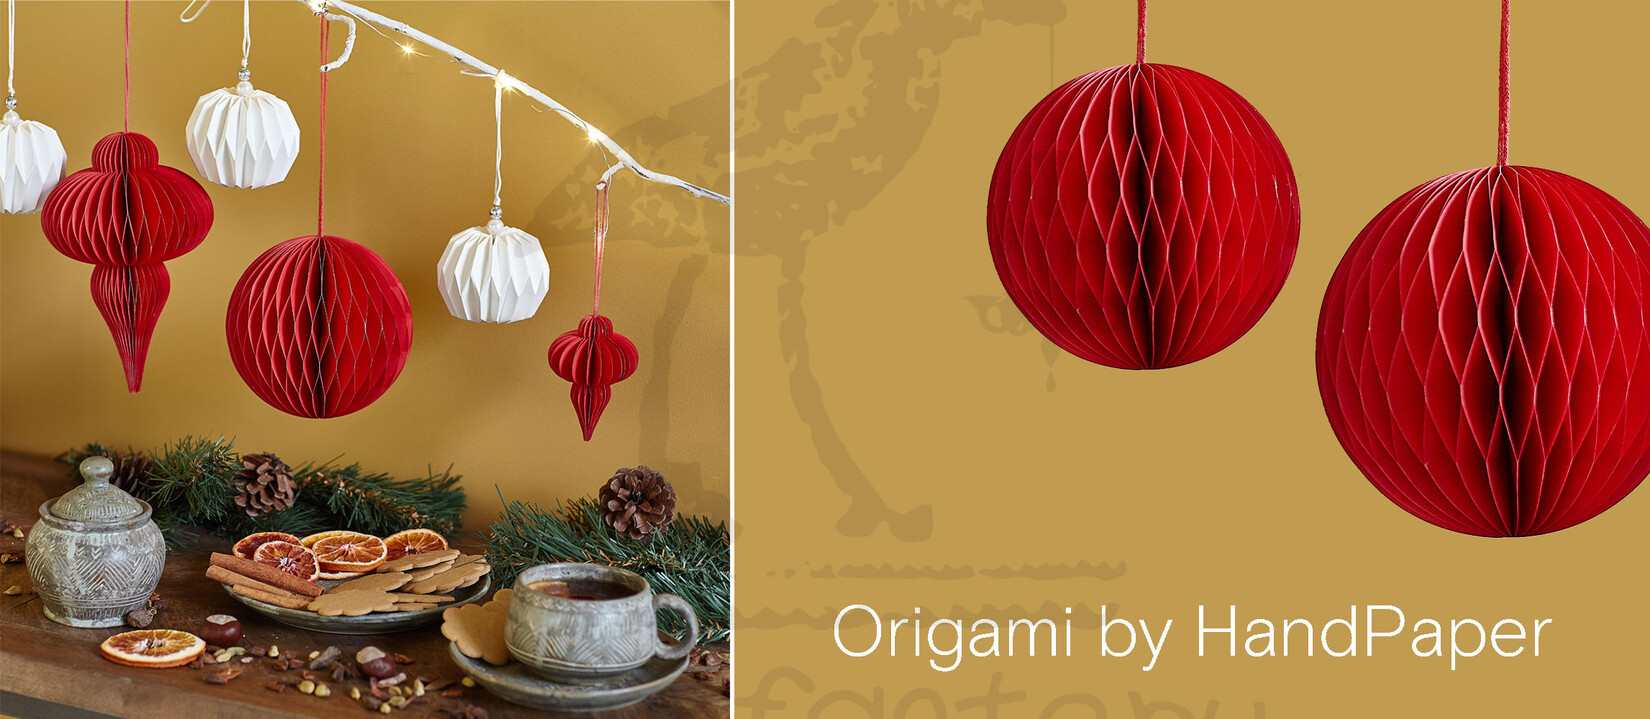 Origami by HandPaper